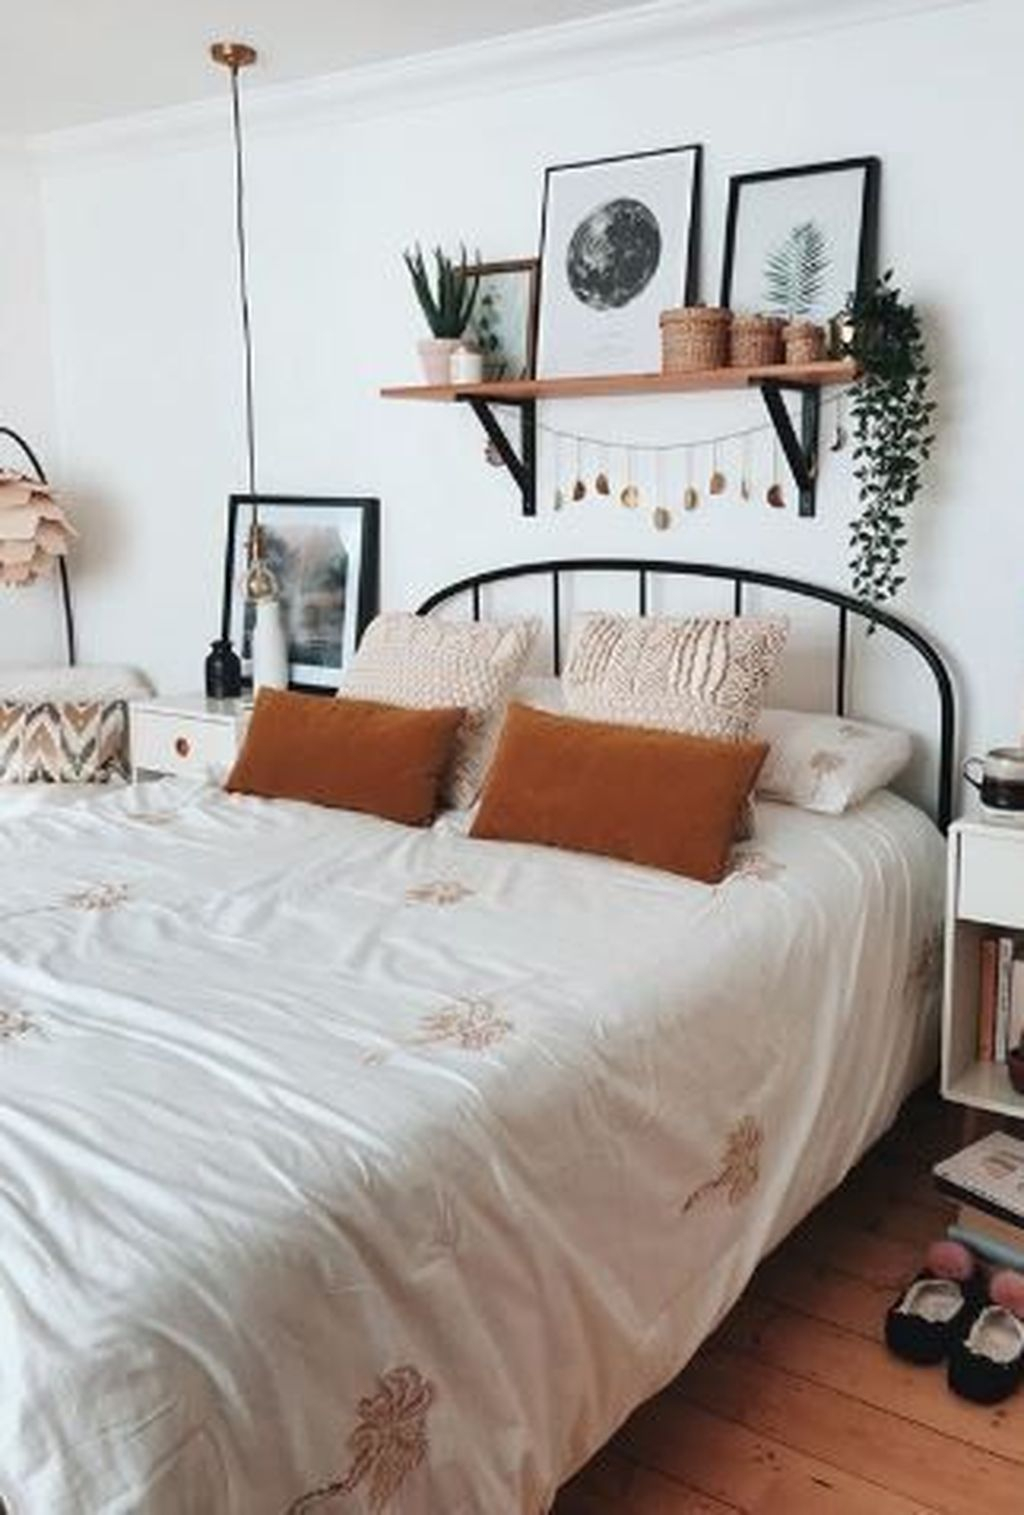 Admiring Bedroom Decor Ideas To Have Right Now 03